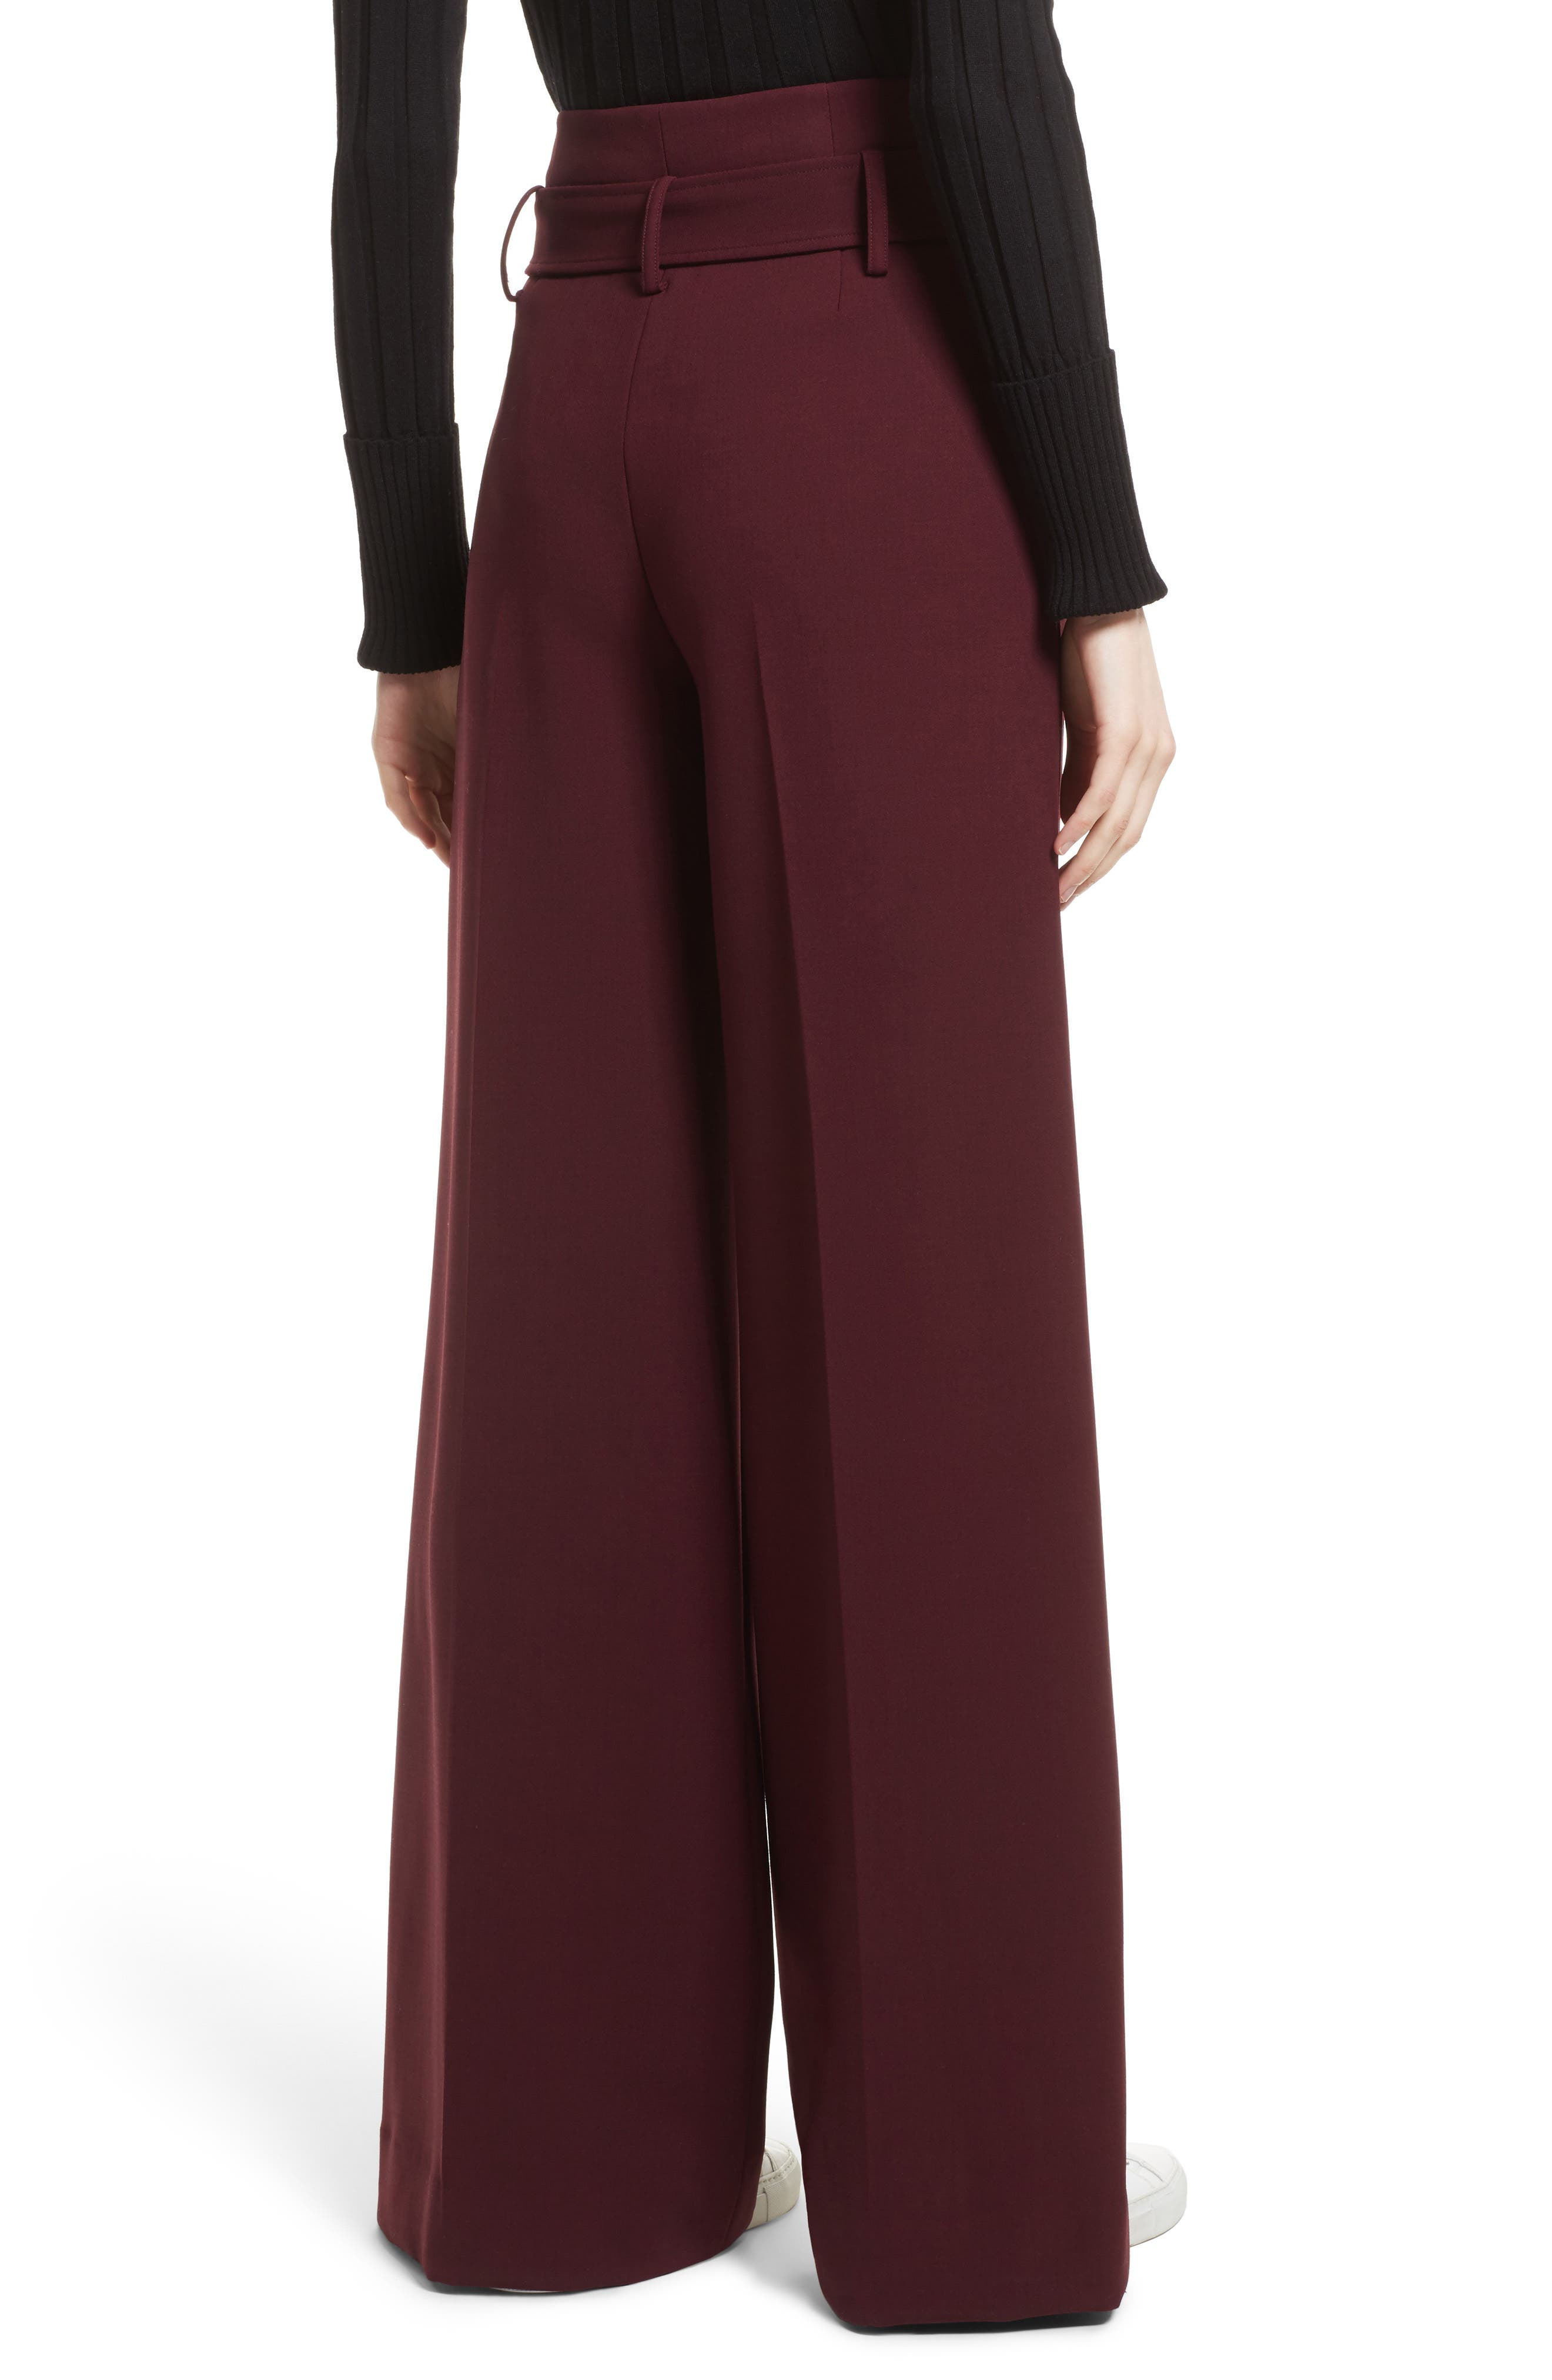 Camogie High Waist Belted Pants,                             Alternate thumbnail 2, color,                             933